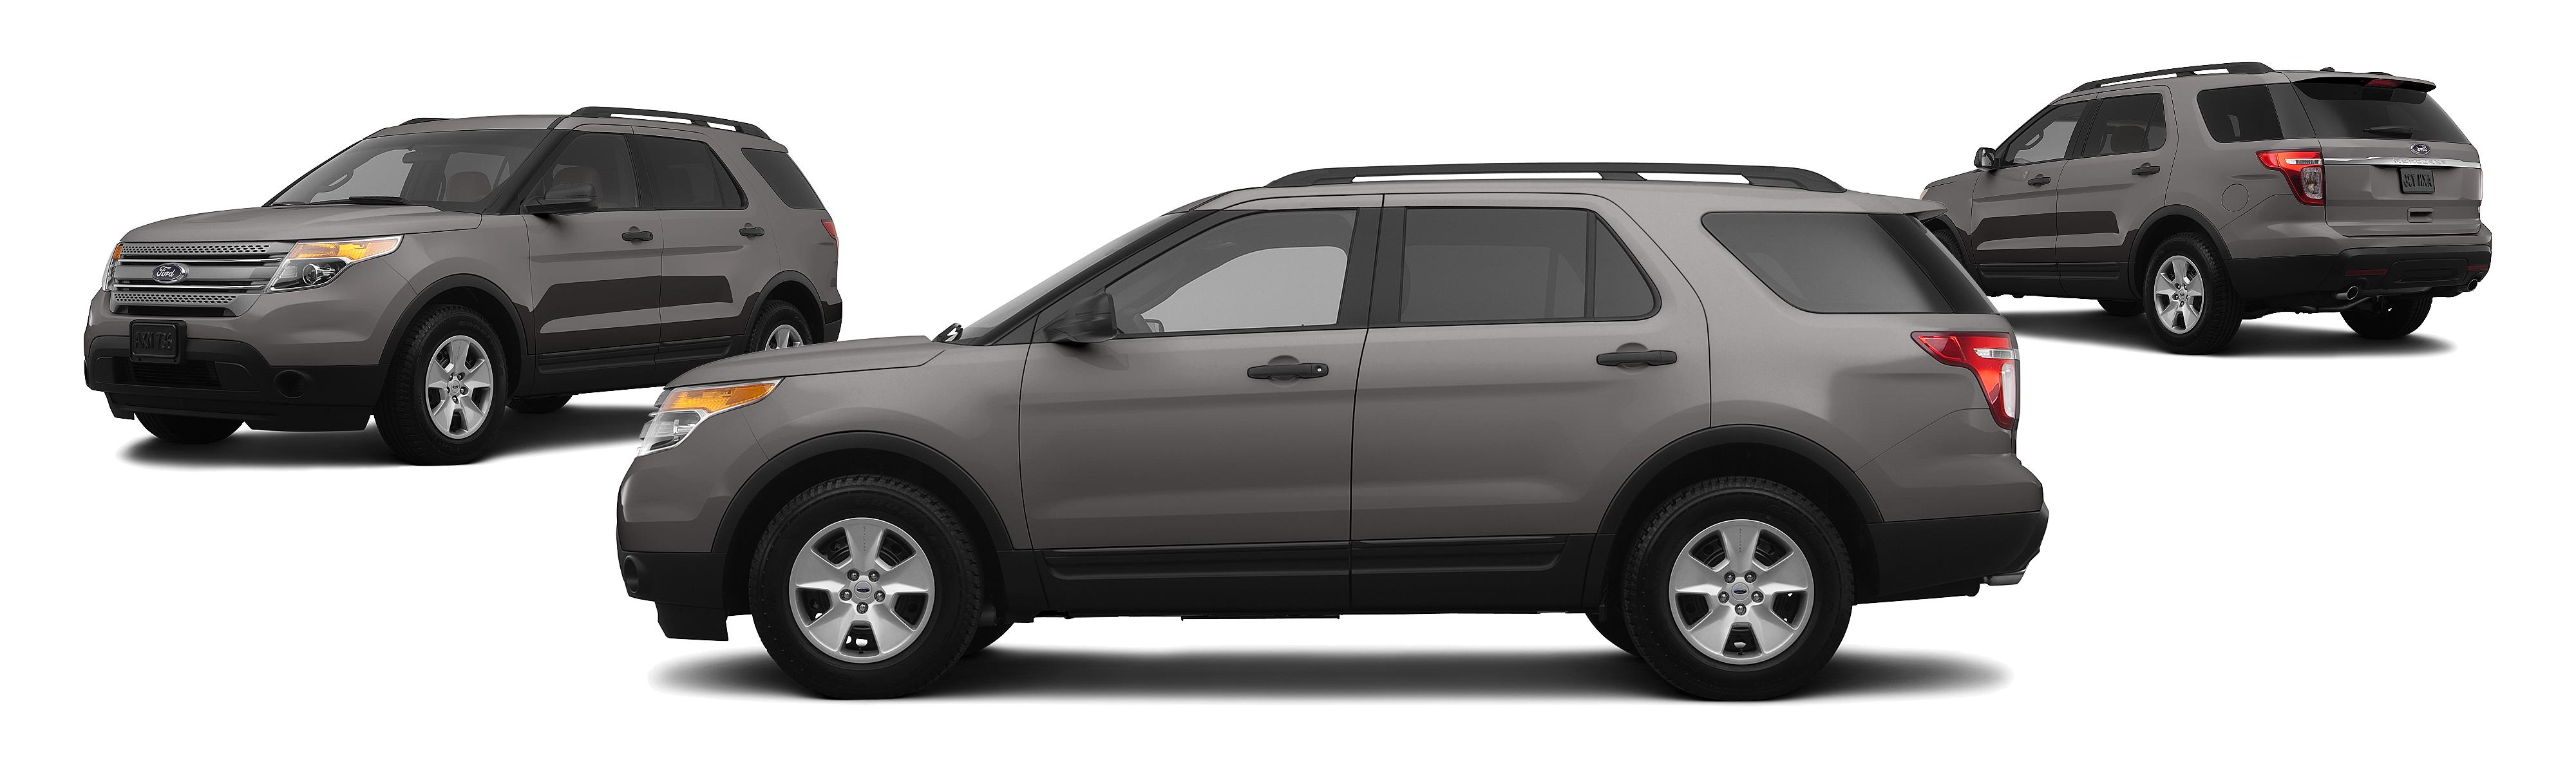 2013 Ford Explorer Police Interceptor 4dr Suv Research Groovecar